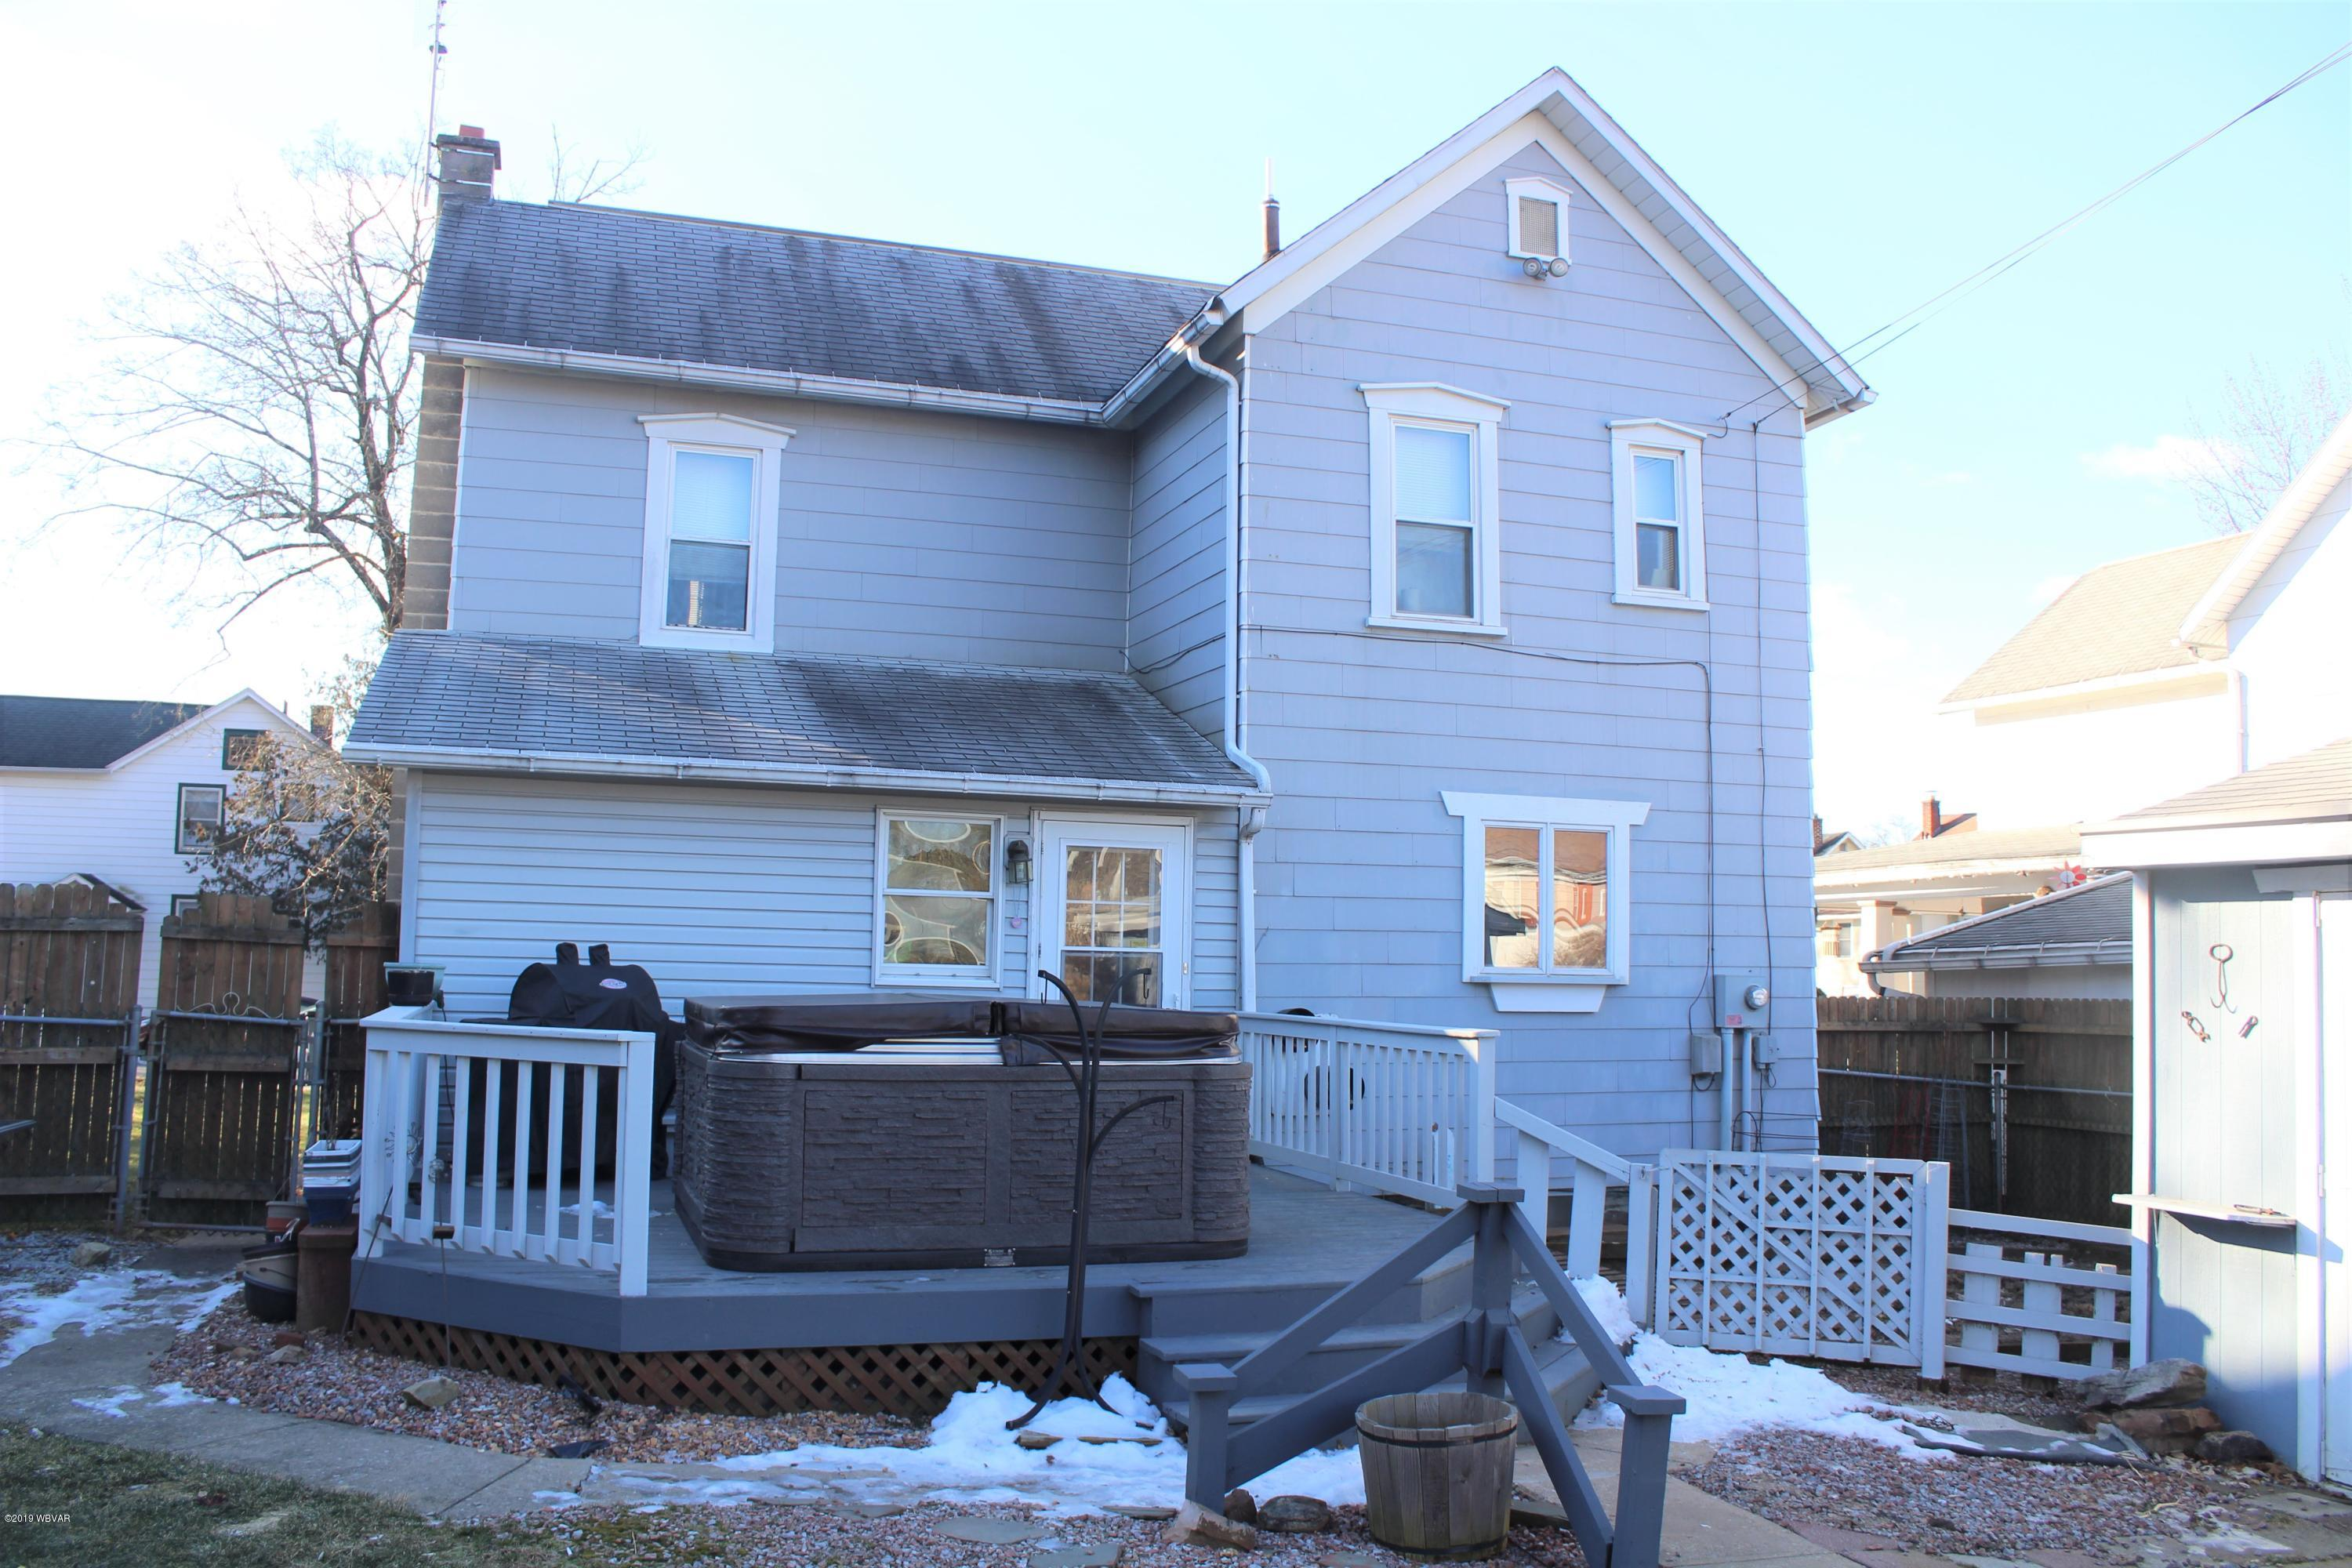 15 MAPLE AVENUE,Williamsport,PA 17701,3 Bedrooms Bedrooms,2 BathroomsBathrooms,Residential,MAPLE,WB-86402